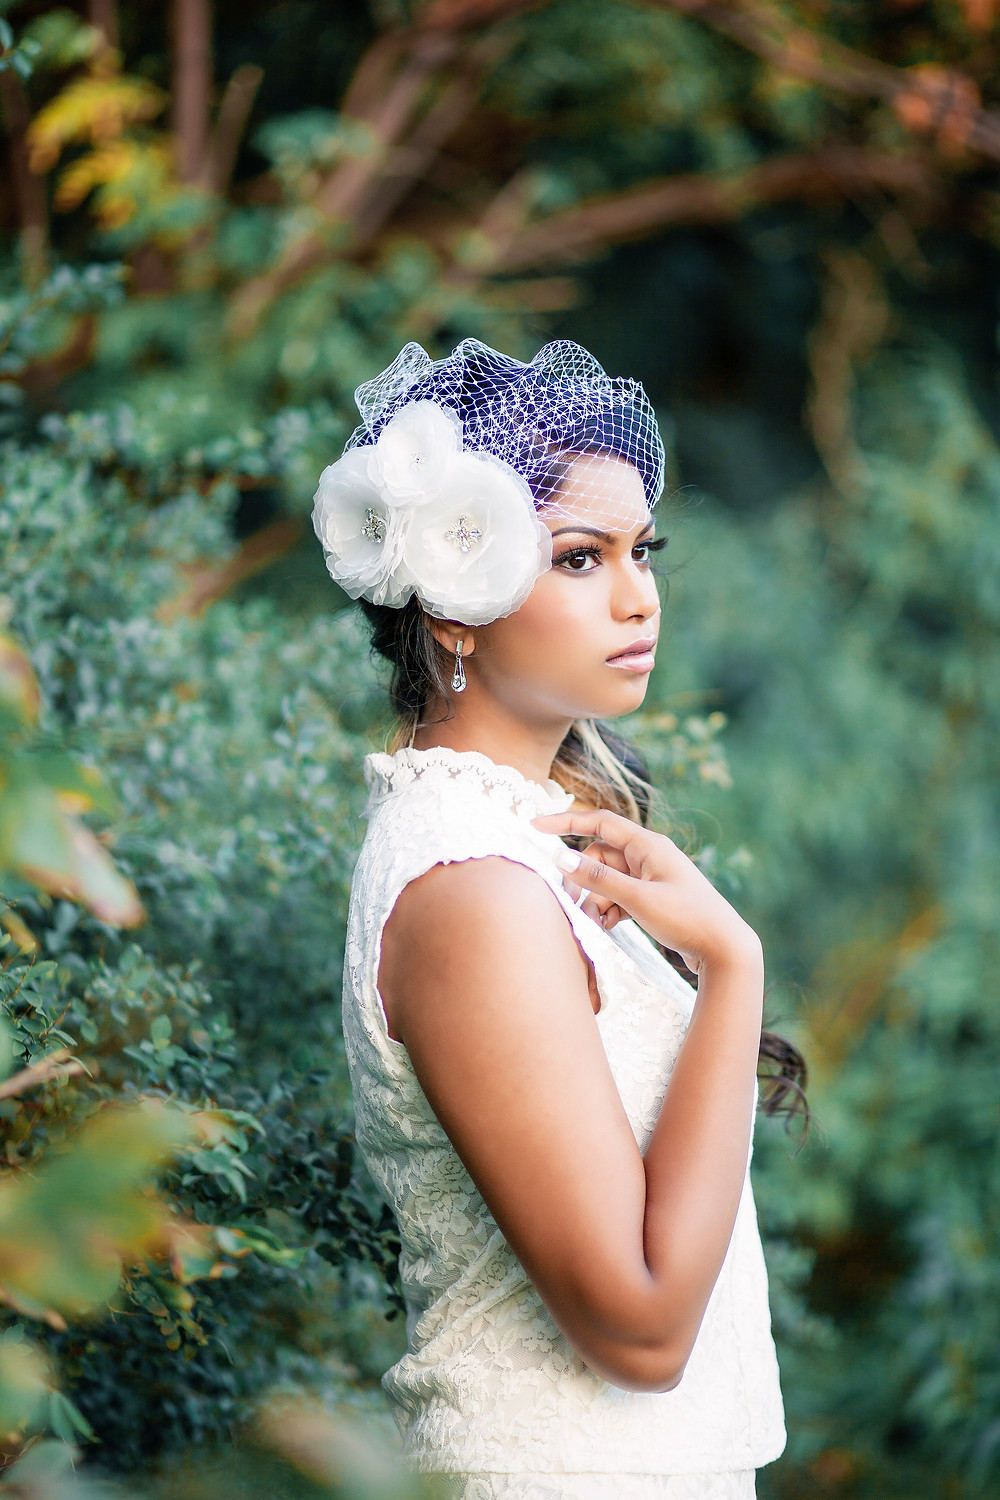 Bridal Accessories - Bird Cage Veil By: Illieana George Couture